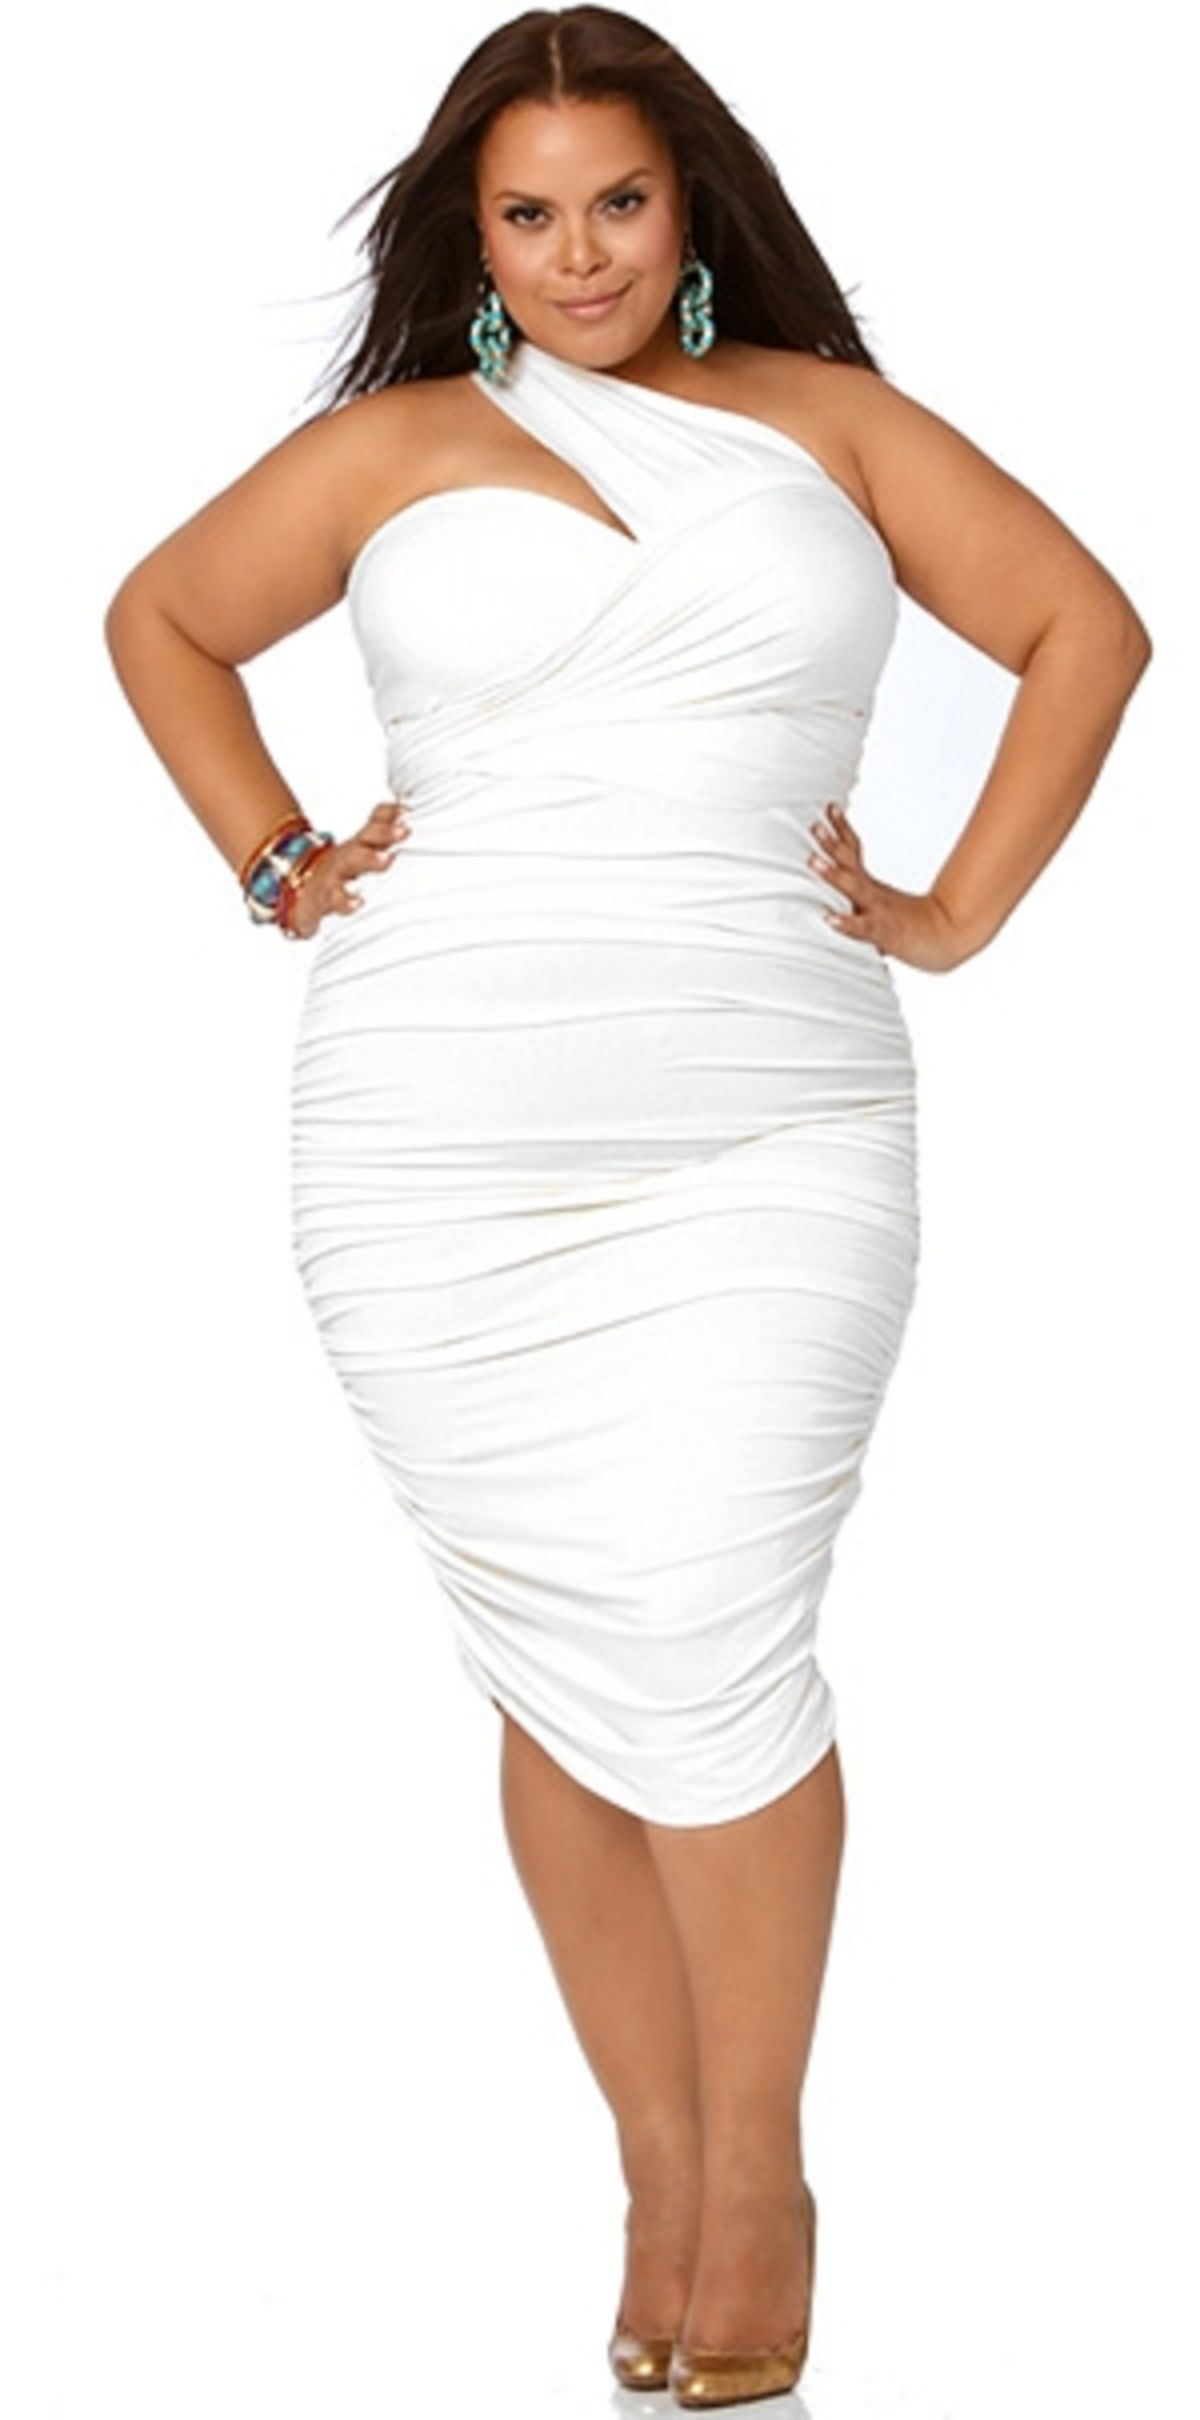 White dresses for plus size women | Curvy Styles | Pinterest ...